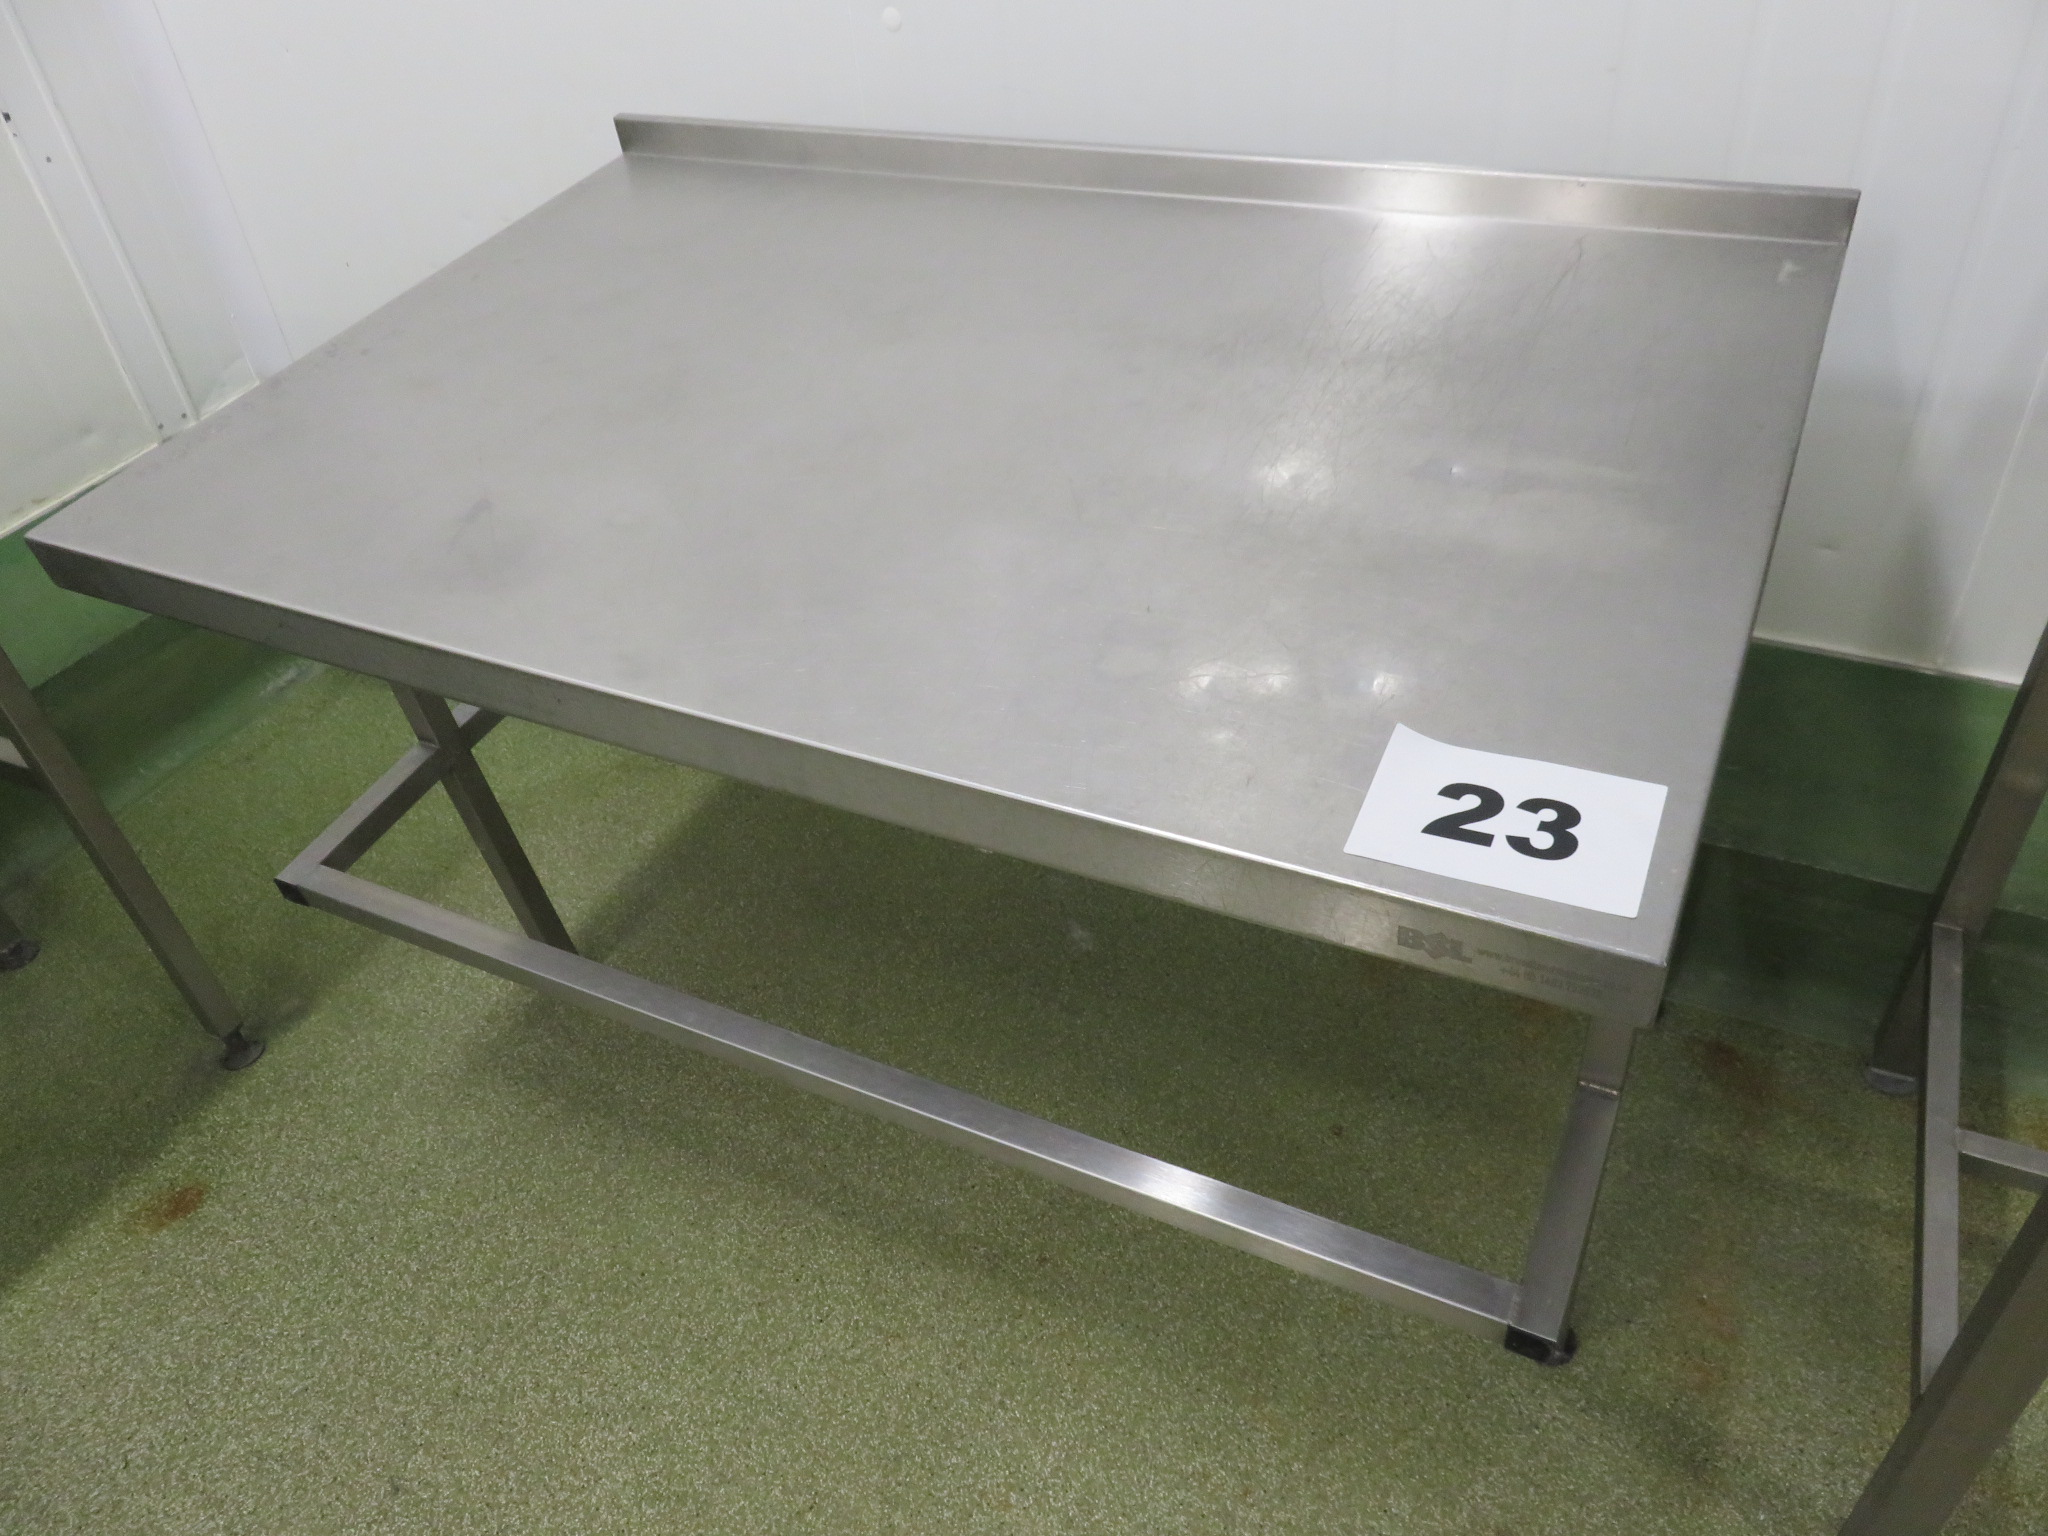 Lot 23 - S/s table. LO £15.